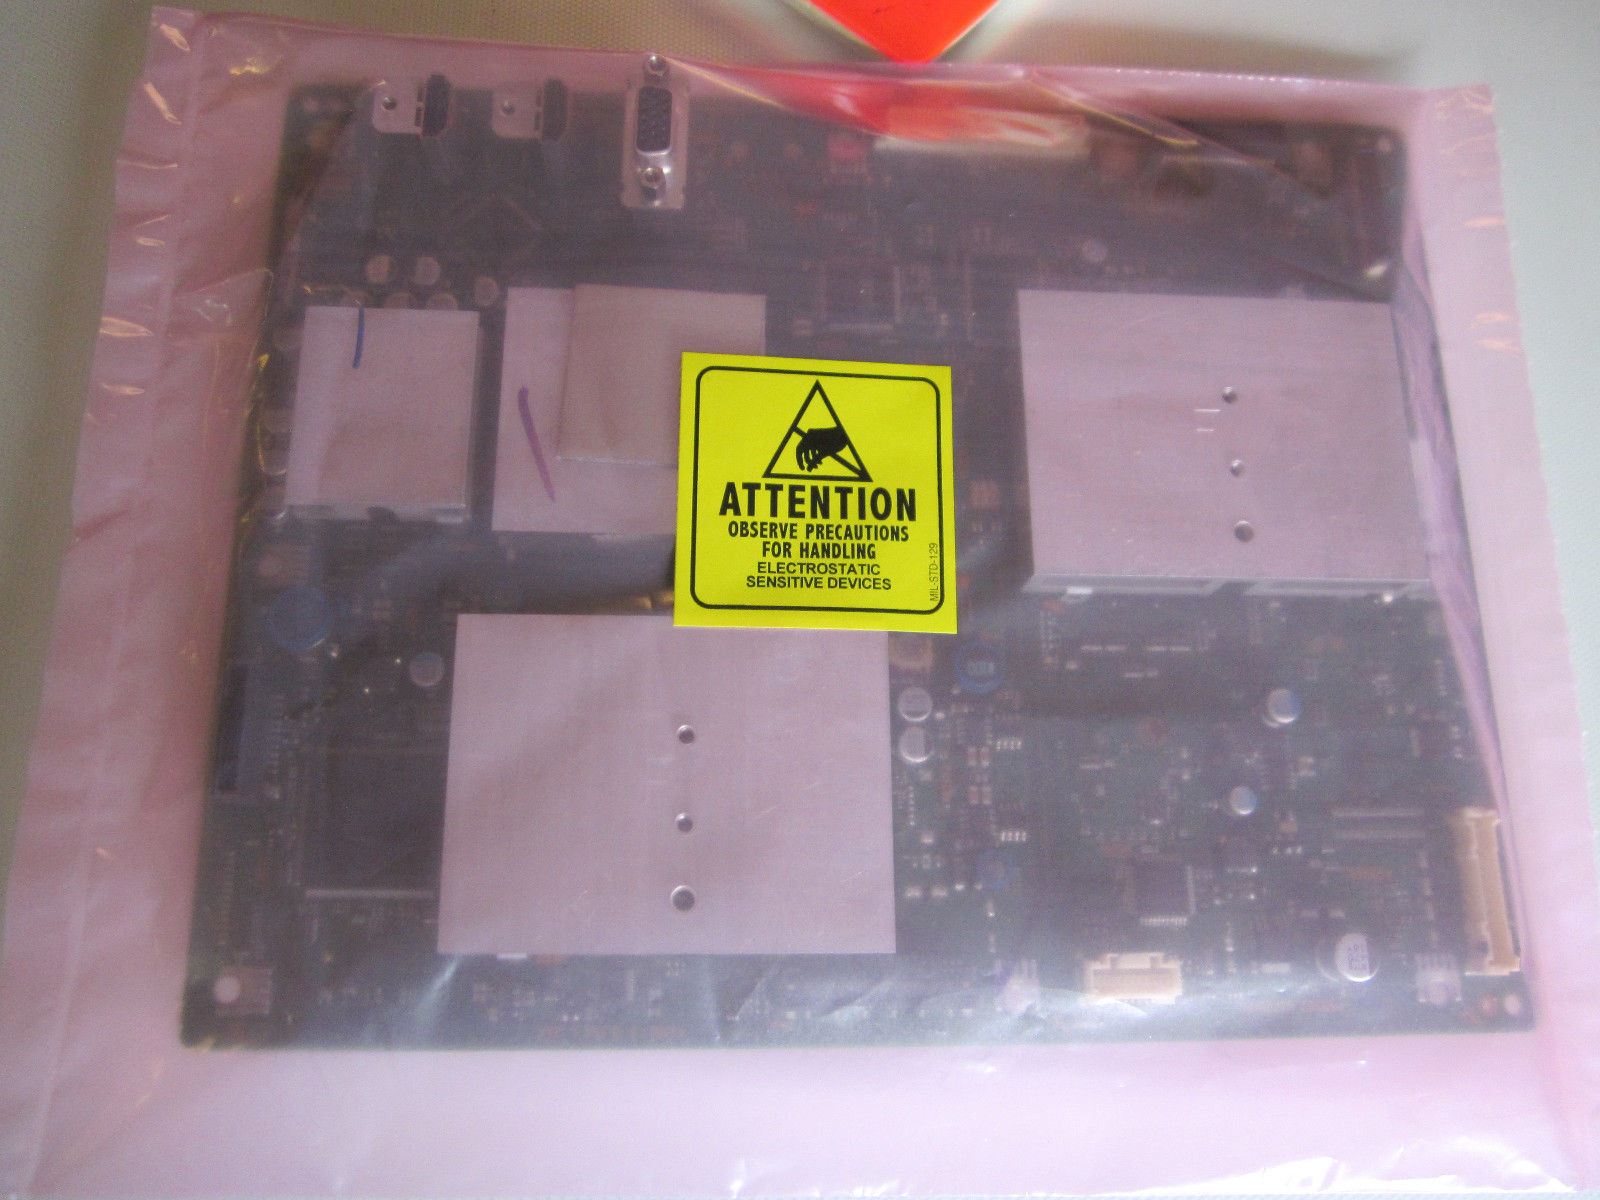 Primary image for Sony A-1418-997-A (1-873-846-14, 1-873-846-15) FB1 Board (Main Board) [See List]